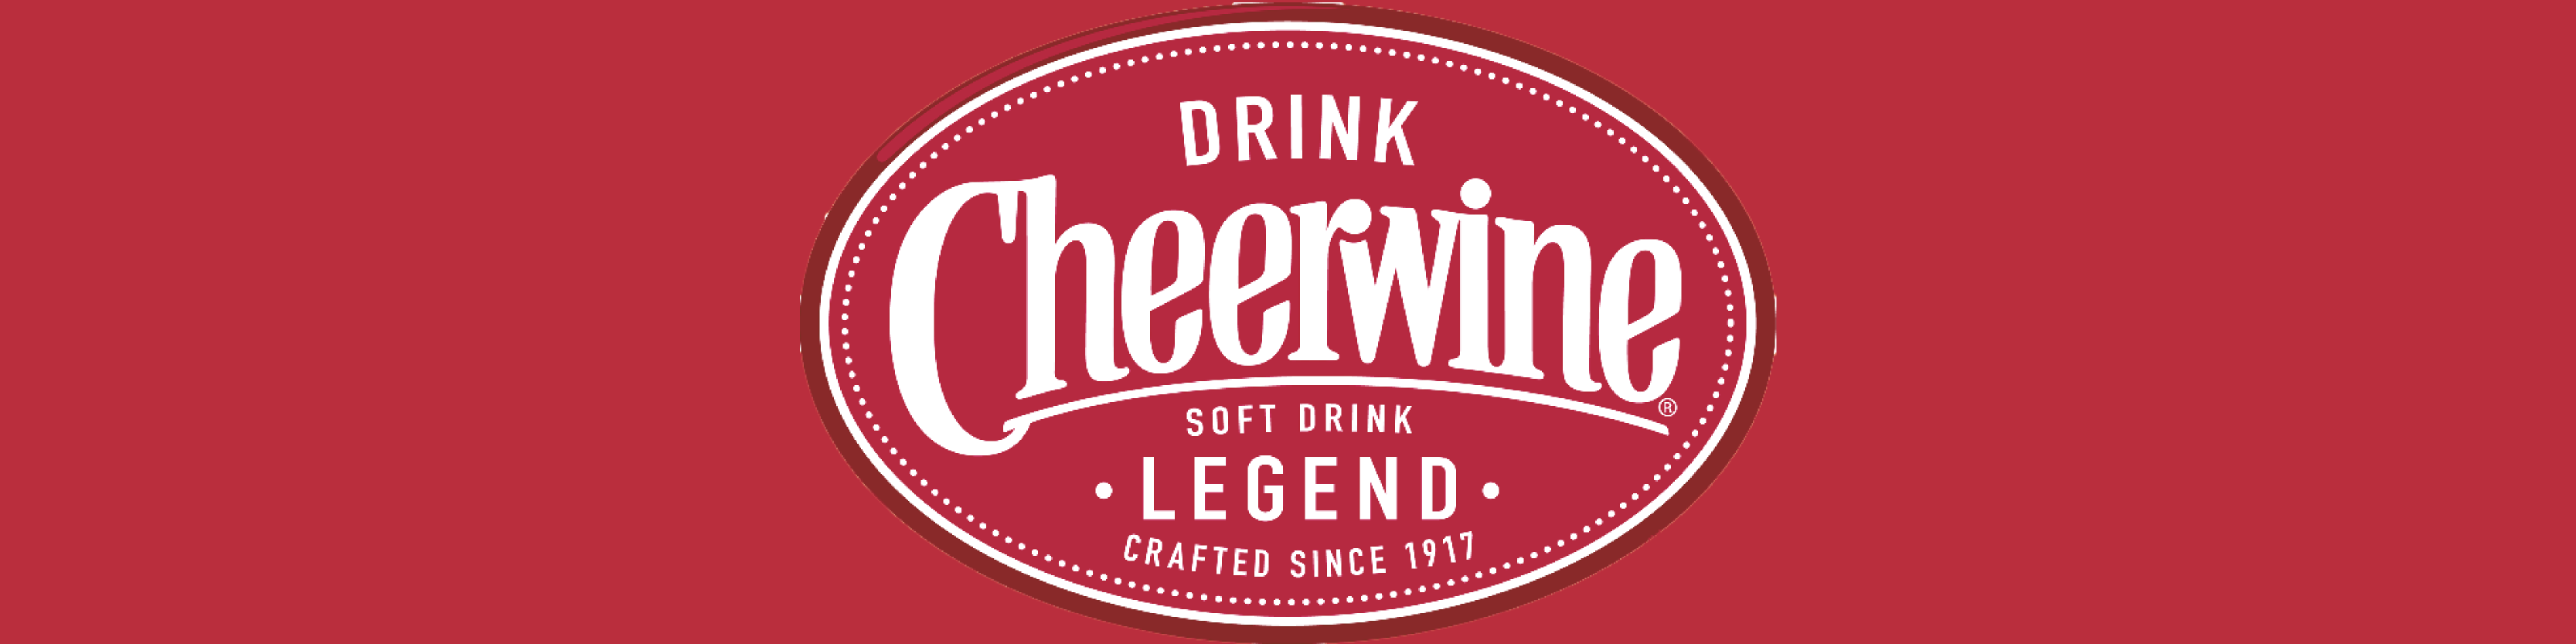 cheerwine-bannerx.png